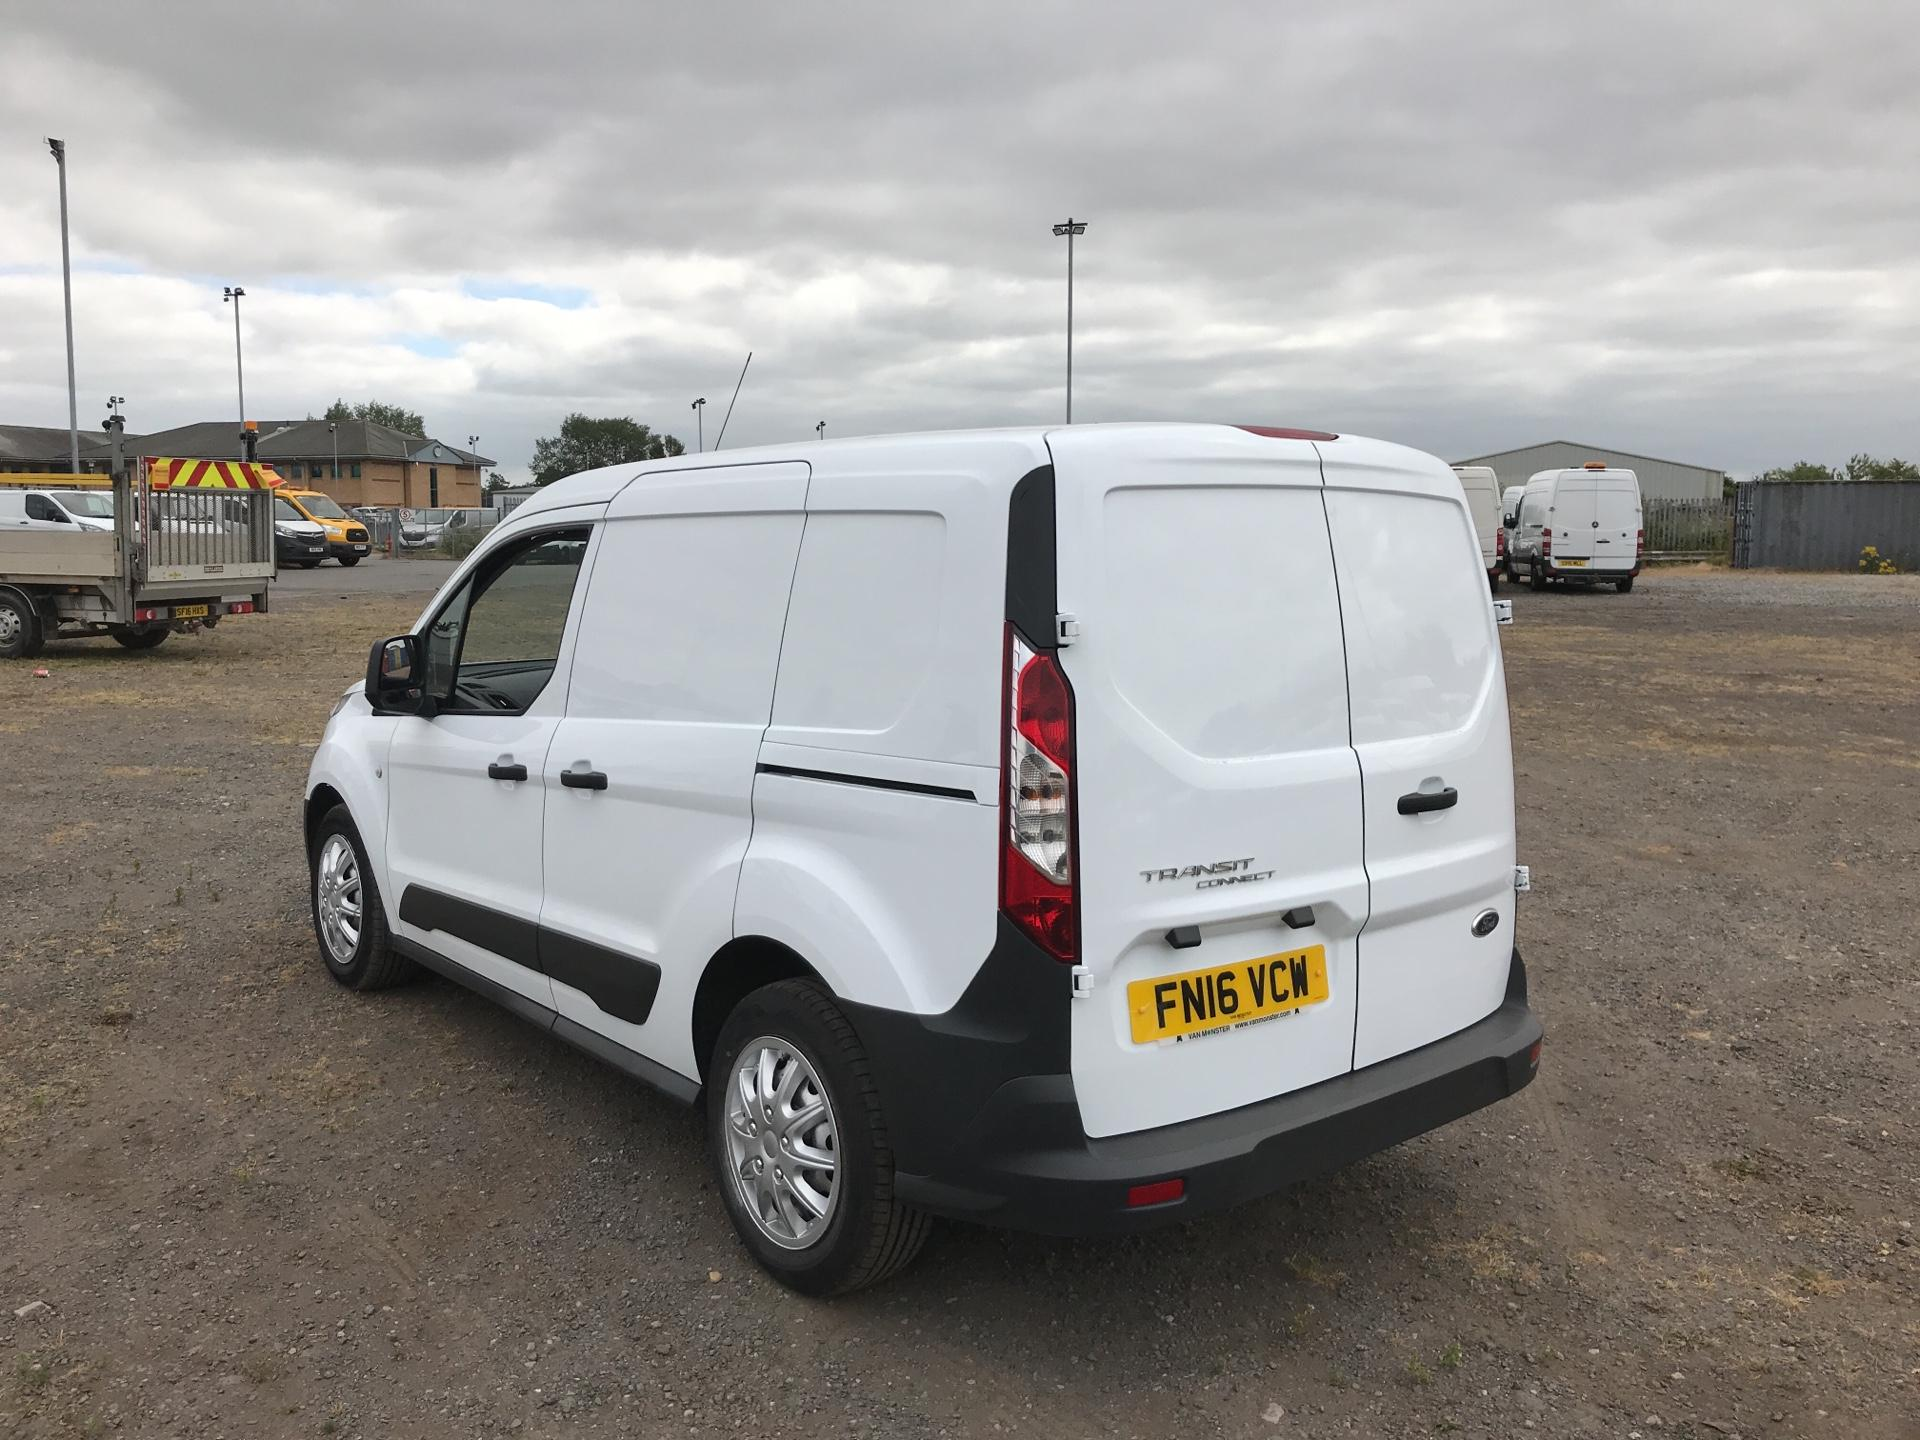 2016 Ford Transit Connect 200 L1 DIESEL 1.6 Tdci 75Ps Van EURO 5 (FN16VCW) Image 5